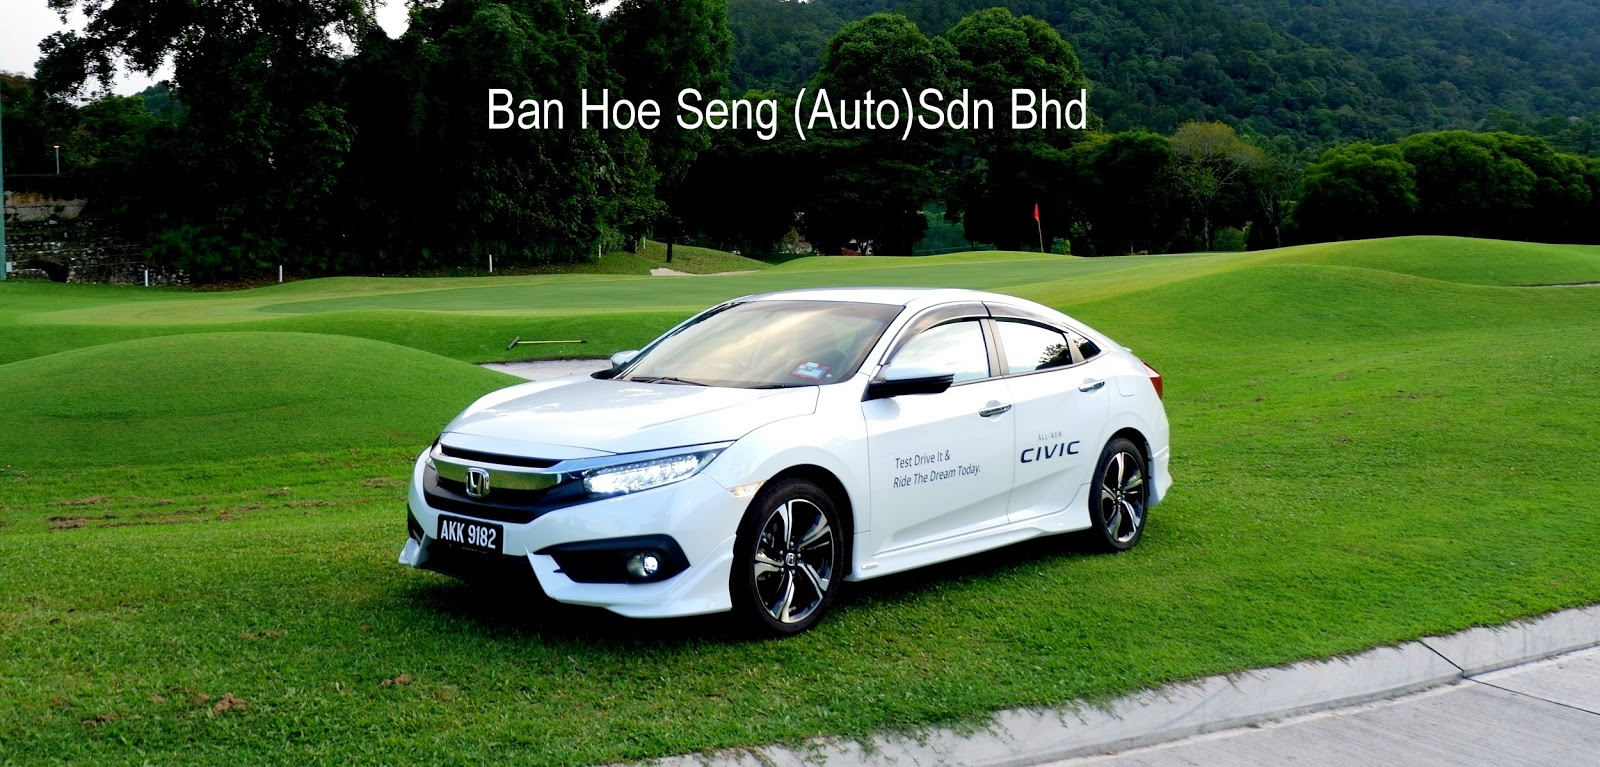 Bonanza Venture Holdings Sdn Bhd BVH The New Owner Of Malaysias Oldest Honda Car Dealer Ban Hoe Seng Now Auto A Subsidiary